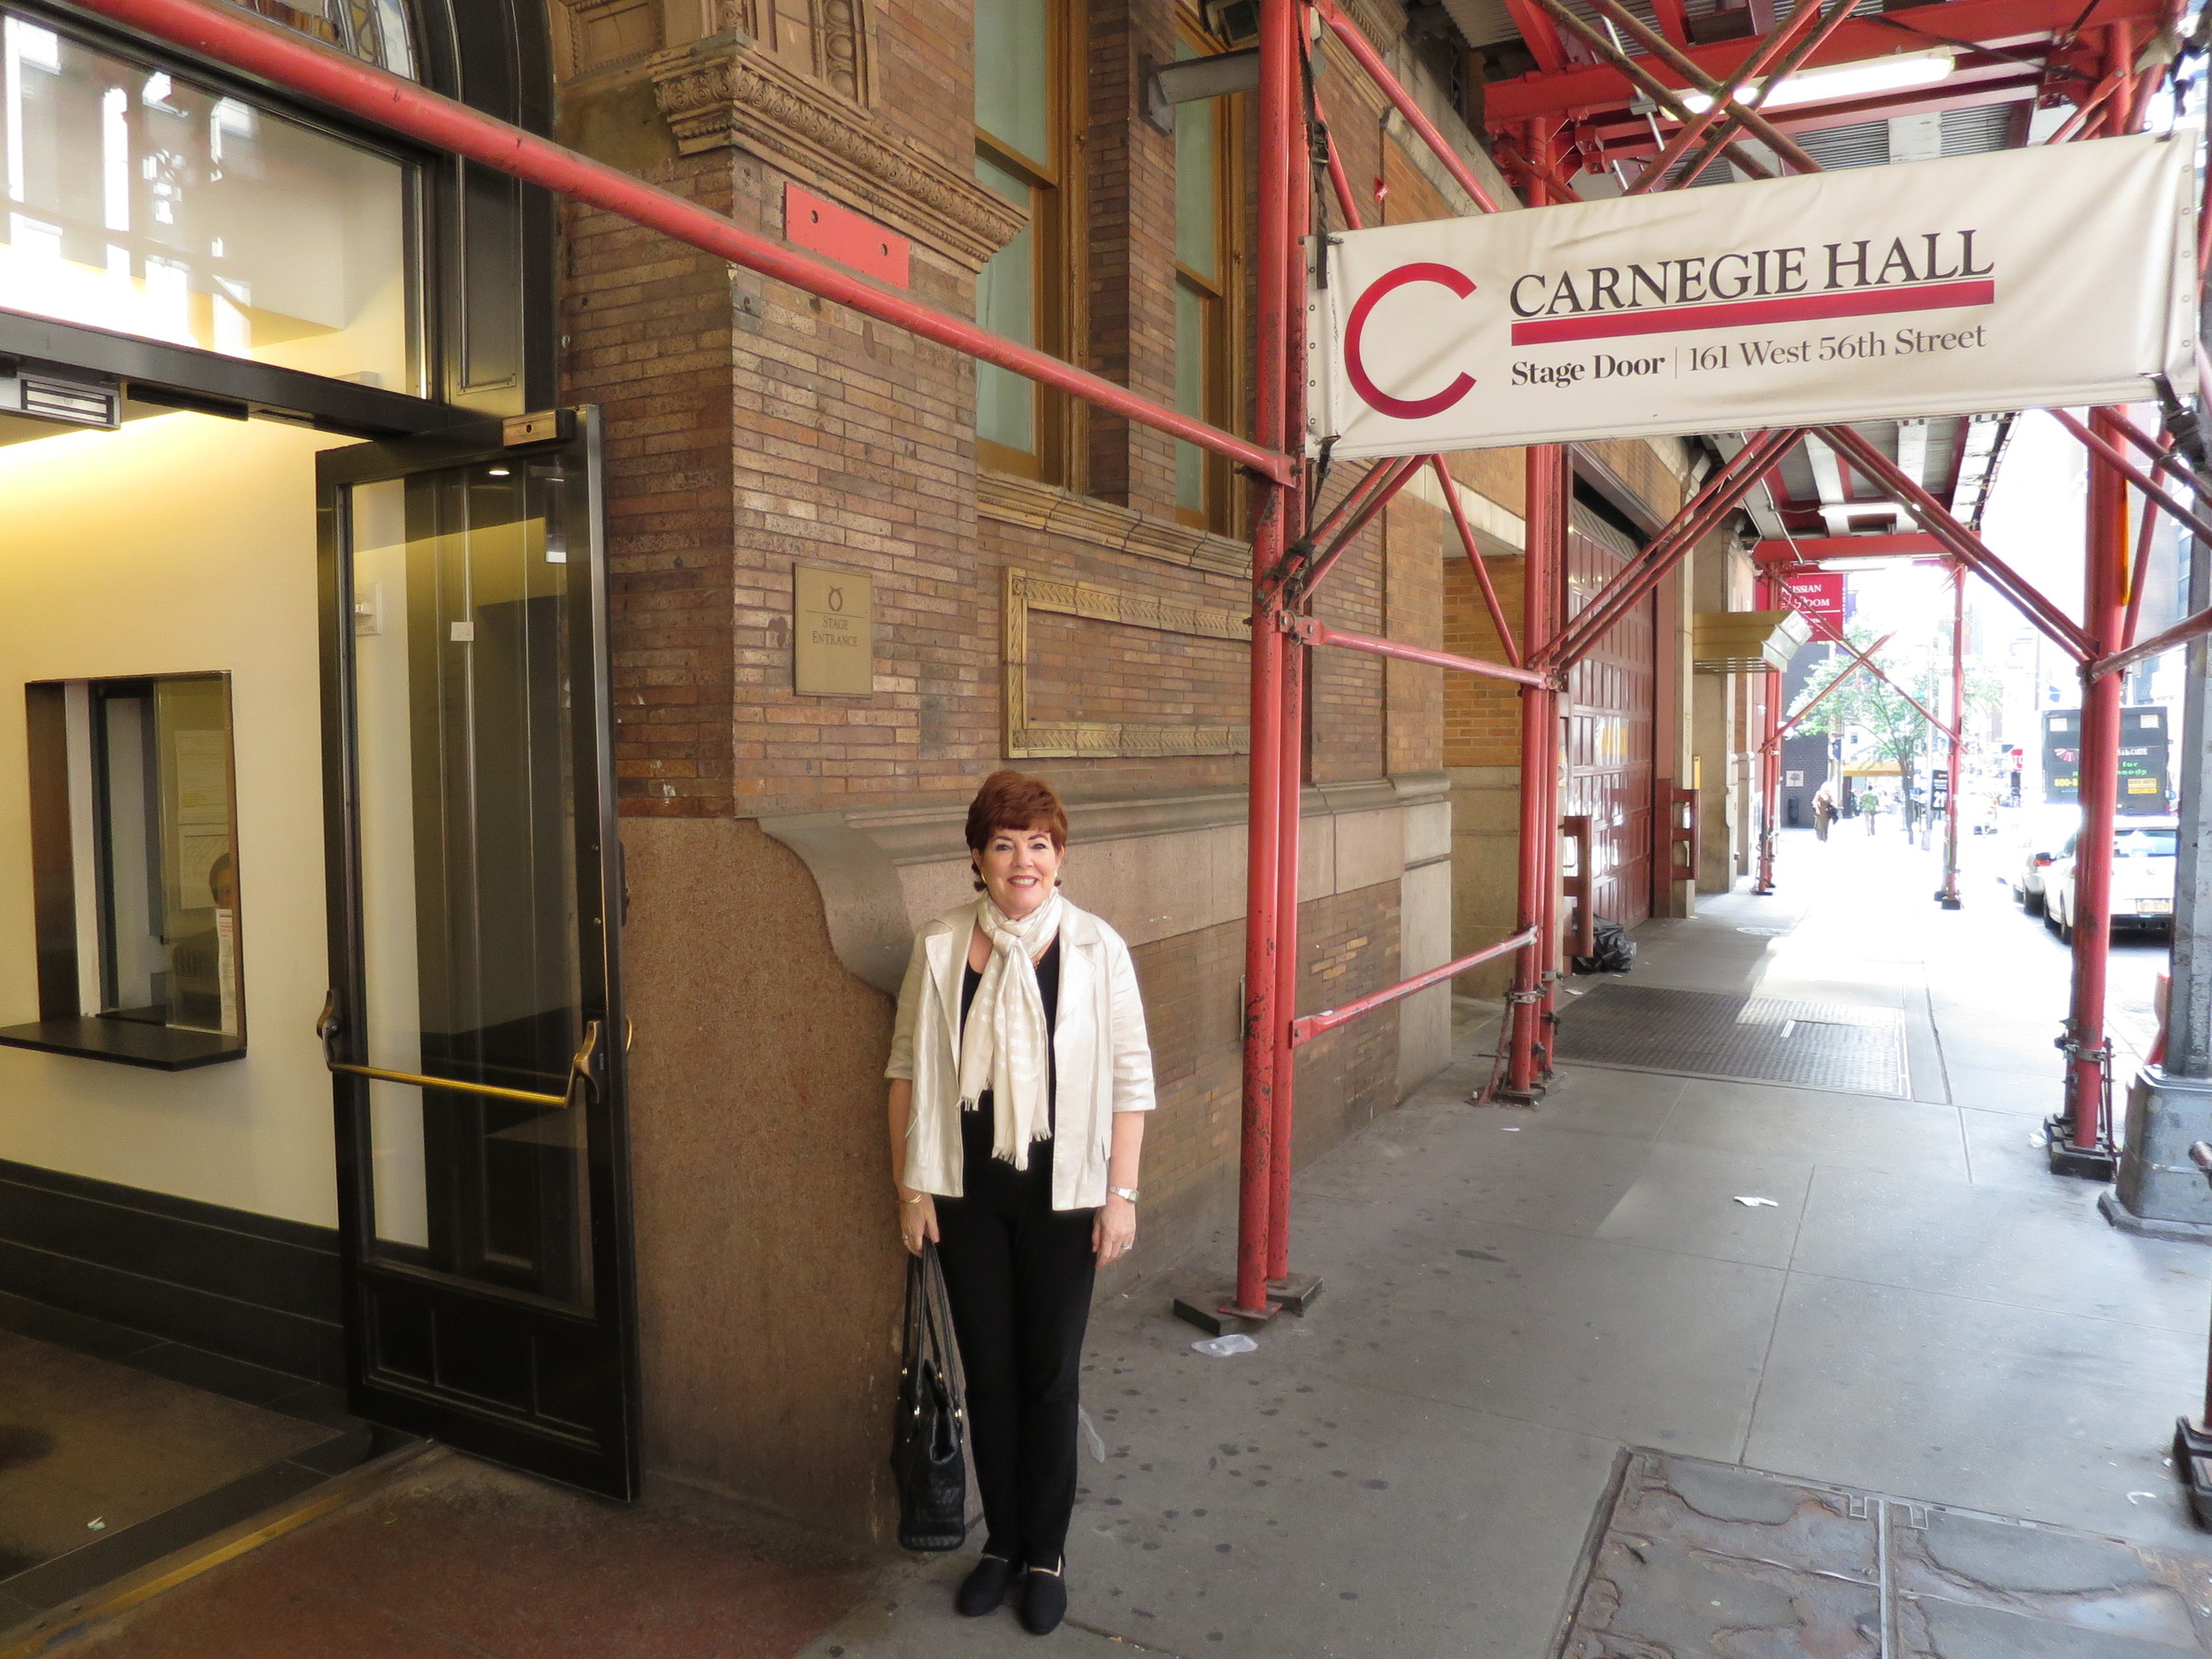 Entering Carnegie Hall for the rehearsal the morning of June 22 2014